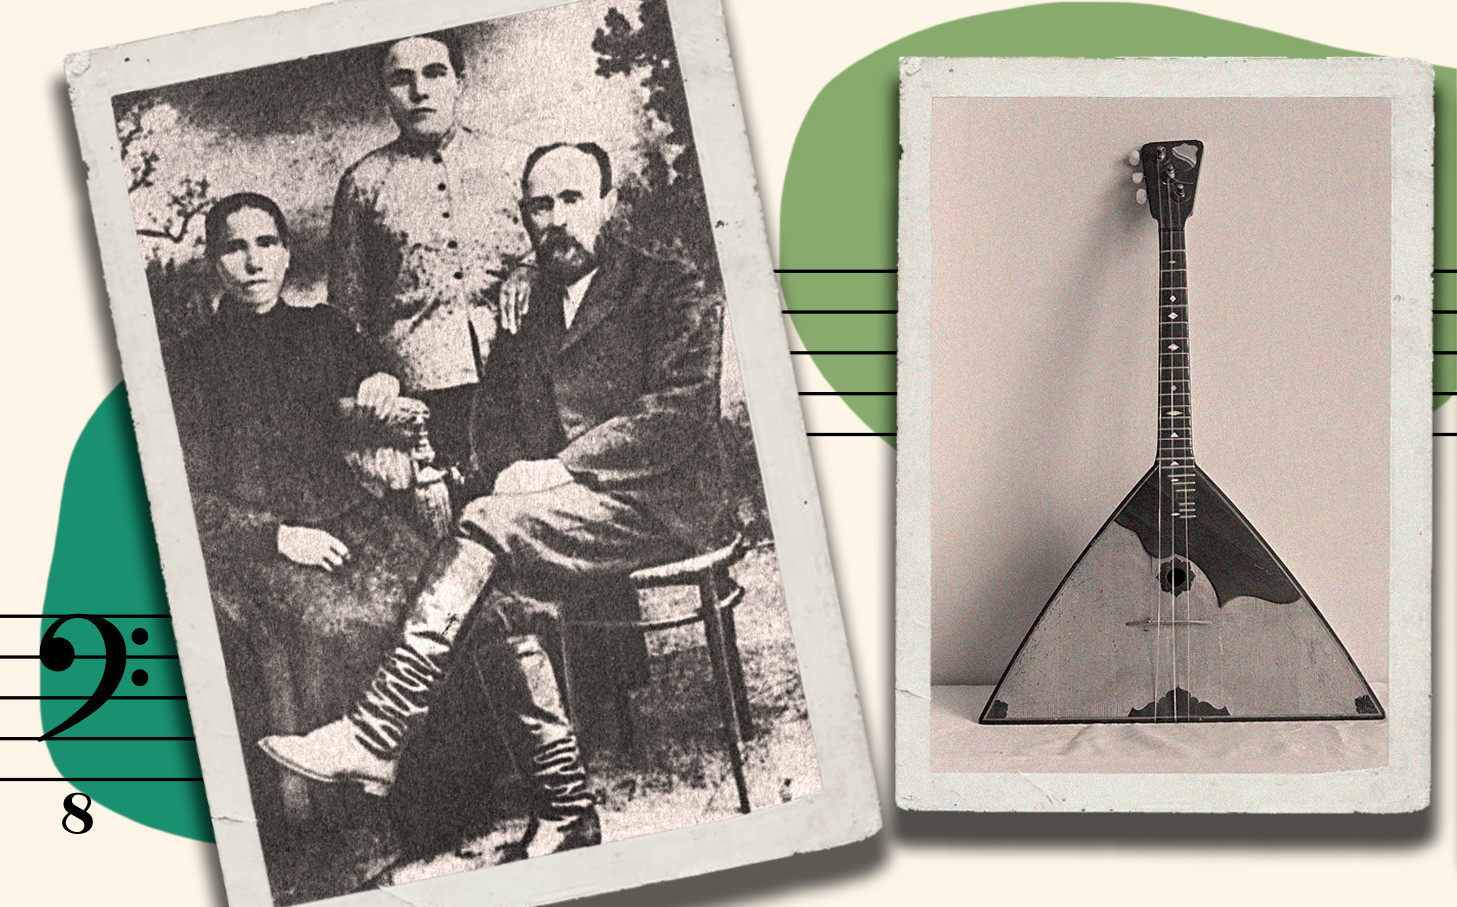 Semen Nalimov with his wife (on the left) and his sister. A traditional folk instrument, balalaika (on the right).